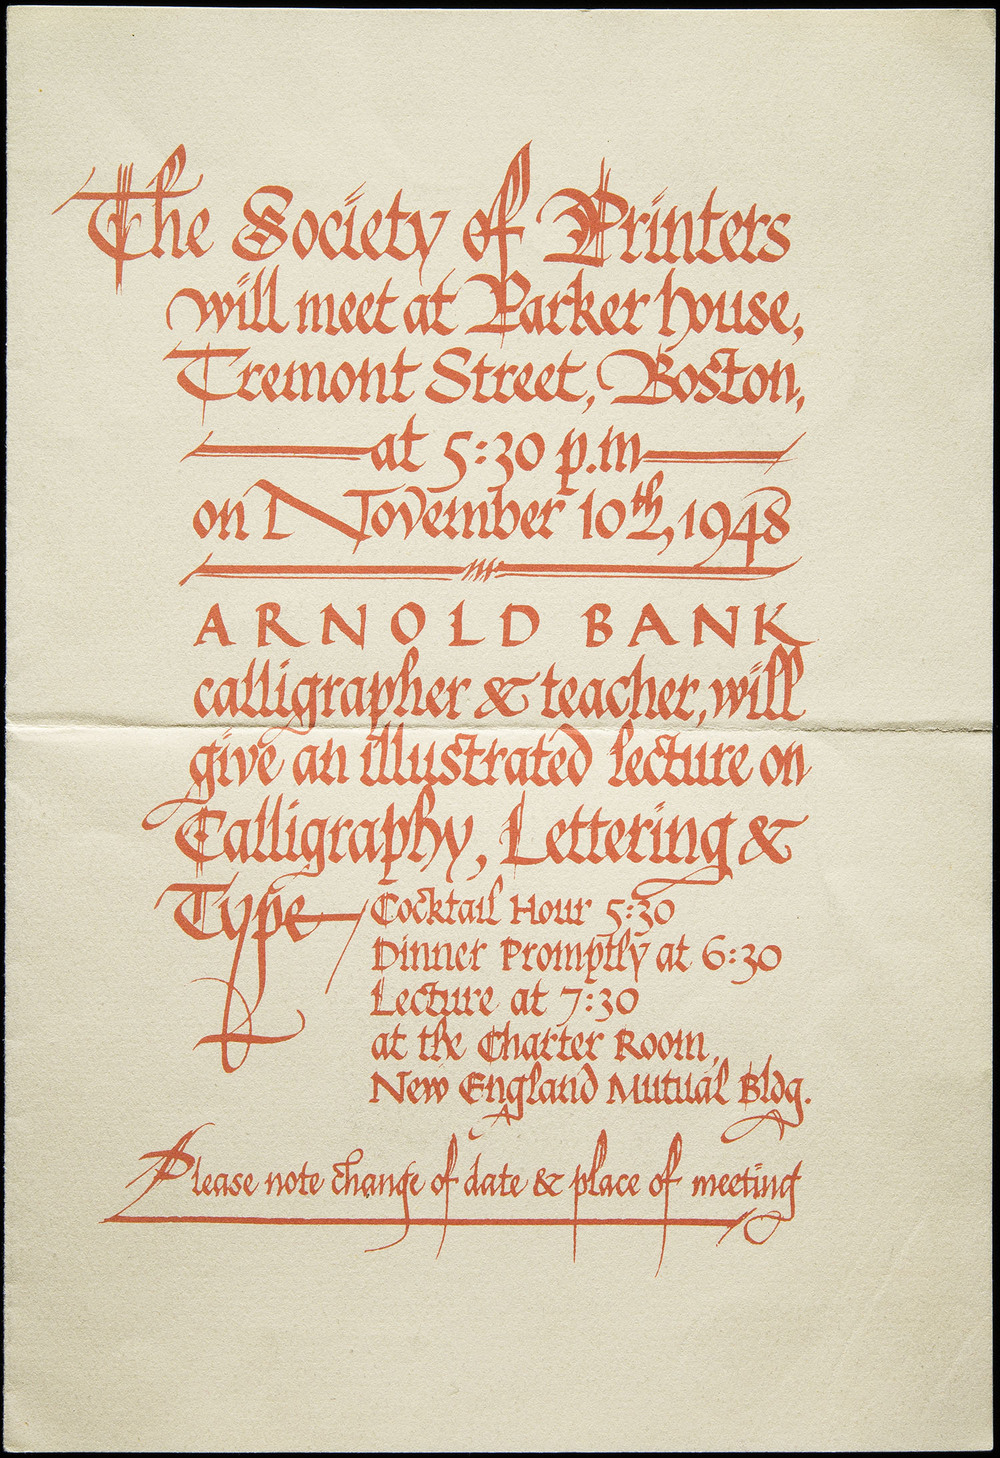 Arnold Bank, Invitation to a lecture, The Society of Printers, Boston, 1948, 15.9 x 23.2 cm